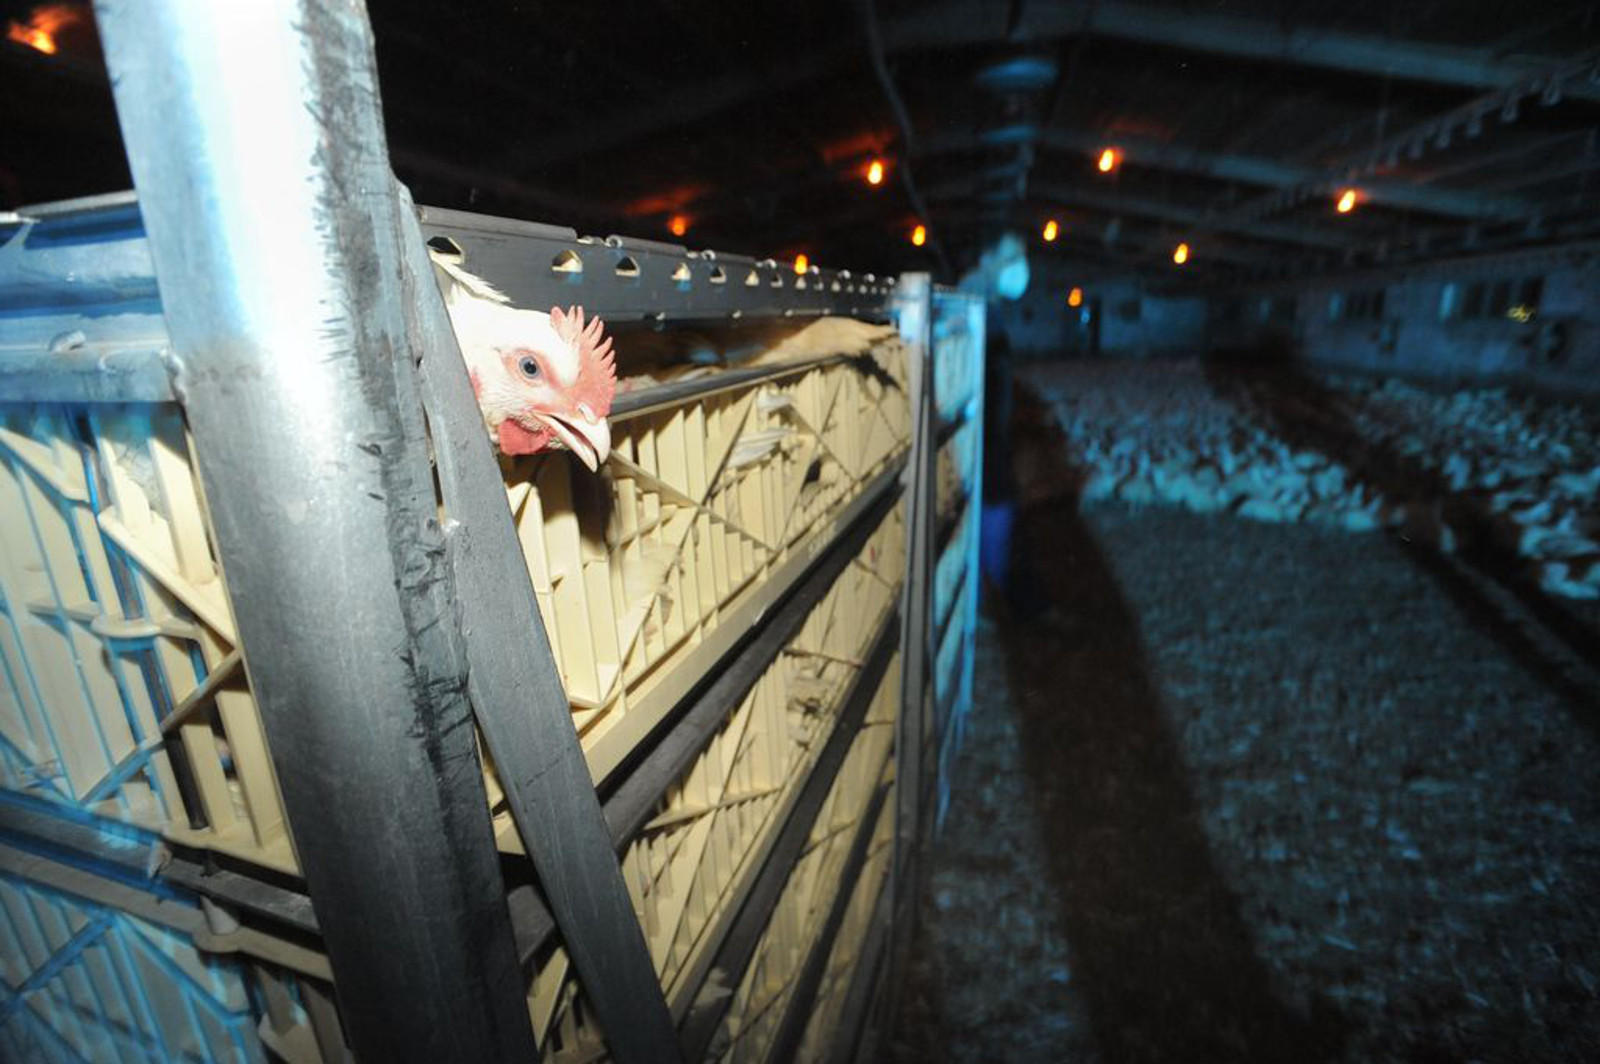 4 Shocking Human Illnesses That are Linked to Factory Farms